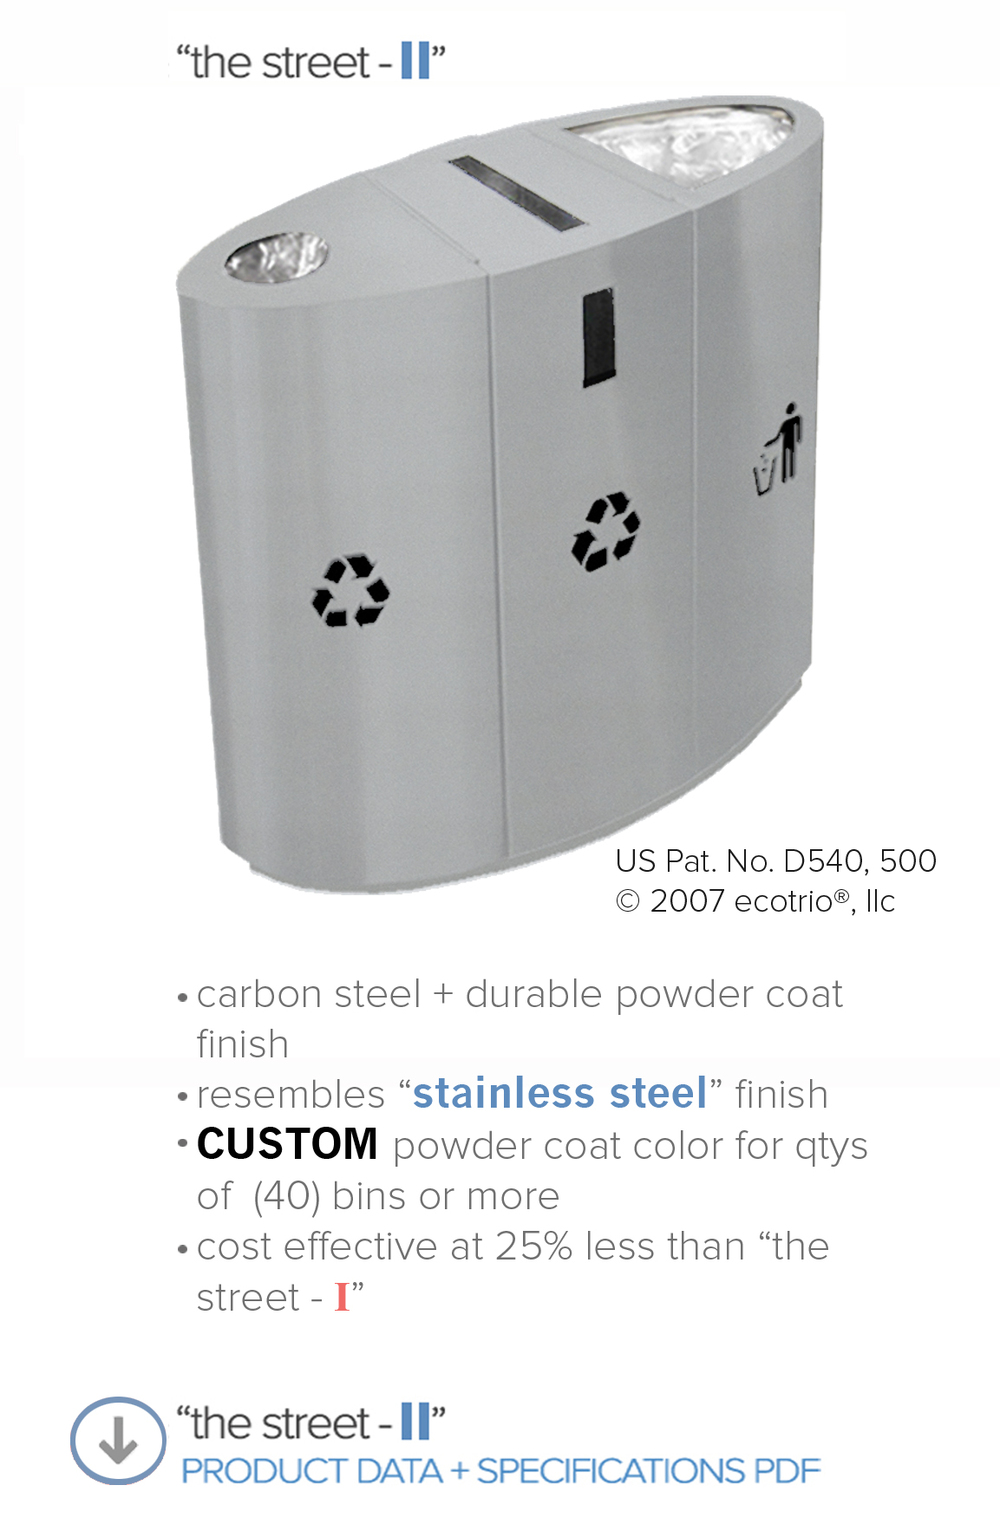 "ecotrio ""the street - II"", ecotrio, elliptical shaped, commercial recycling bins, stainless steel recycle trash and recycling bin, outdoor recycling containers, indoor recycling  bins"